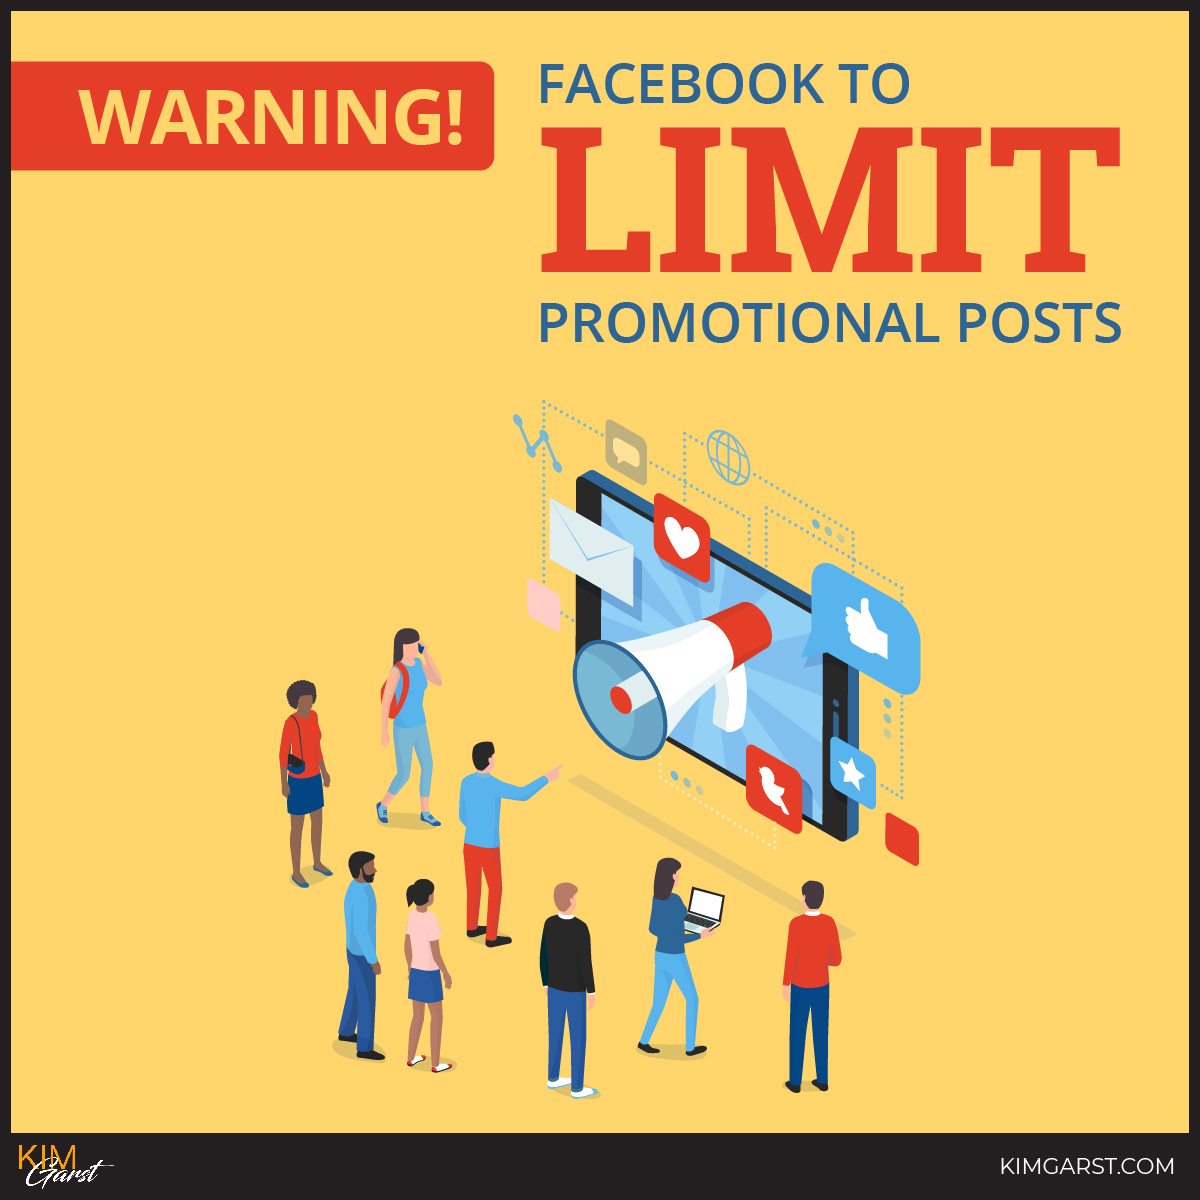 WARNING! Facebook to Limit Promotional Posts